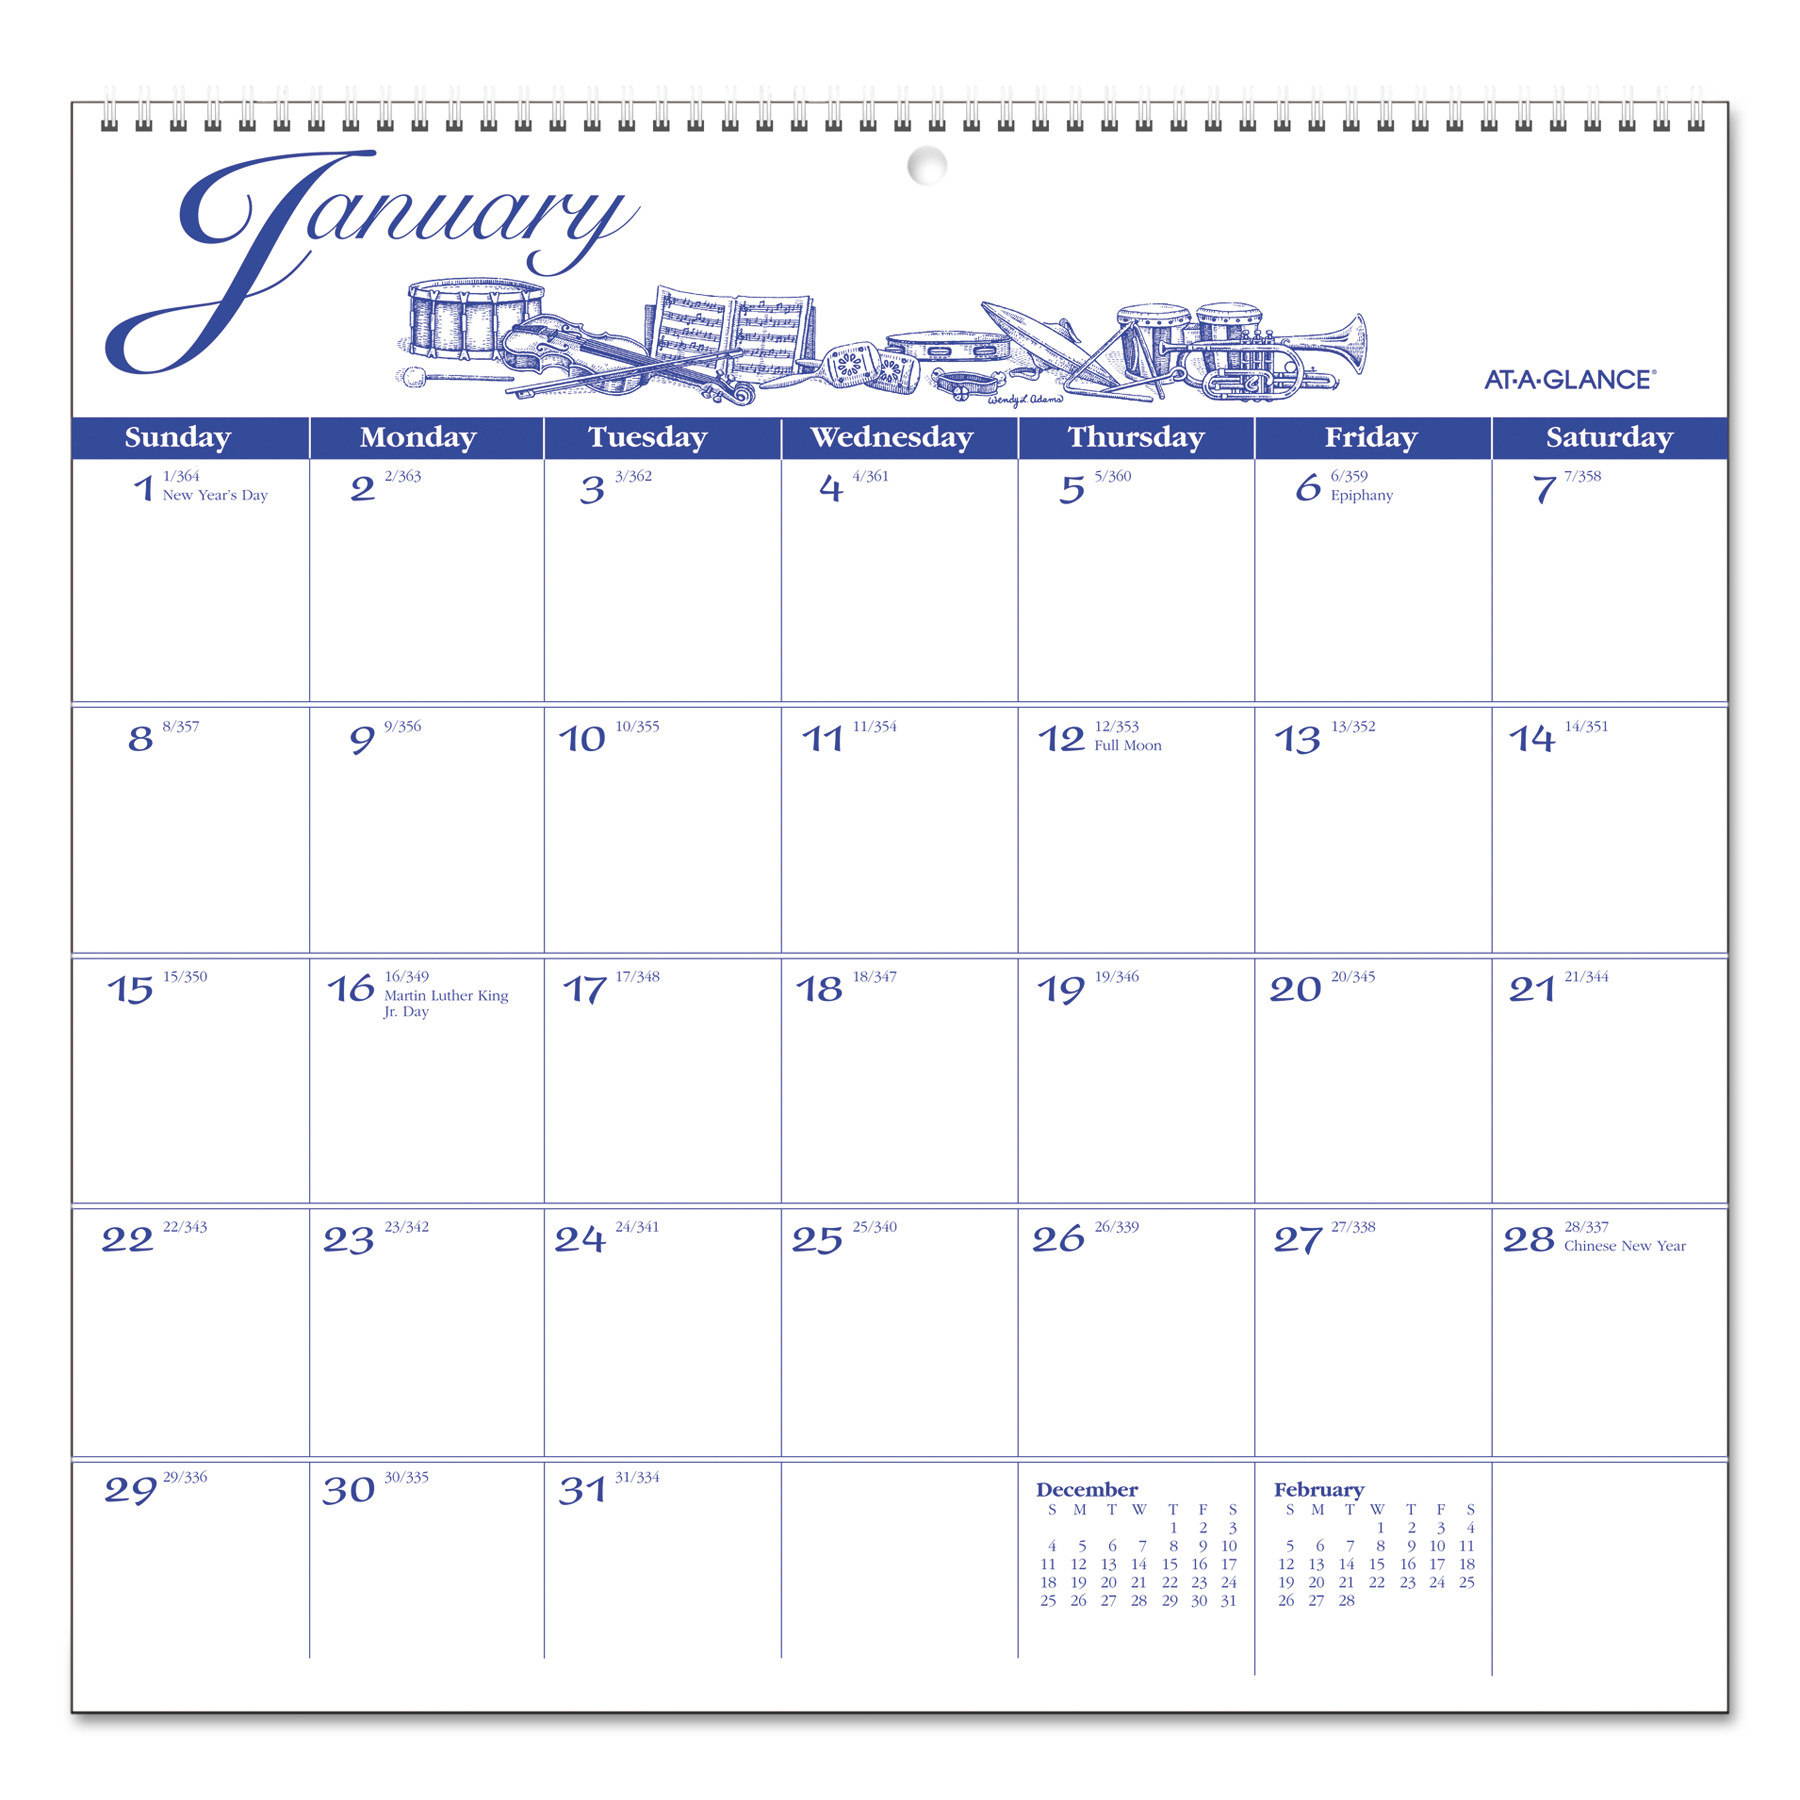 AT-A-GLANCE 12-Month Illustrator's Edition Wall Calendar, 12 x 11 3/4, Illustrations, 2018